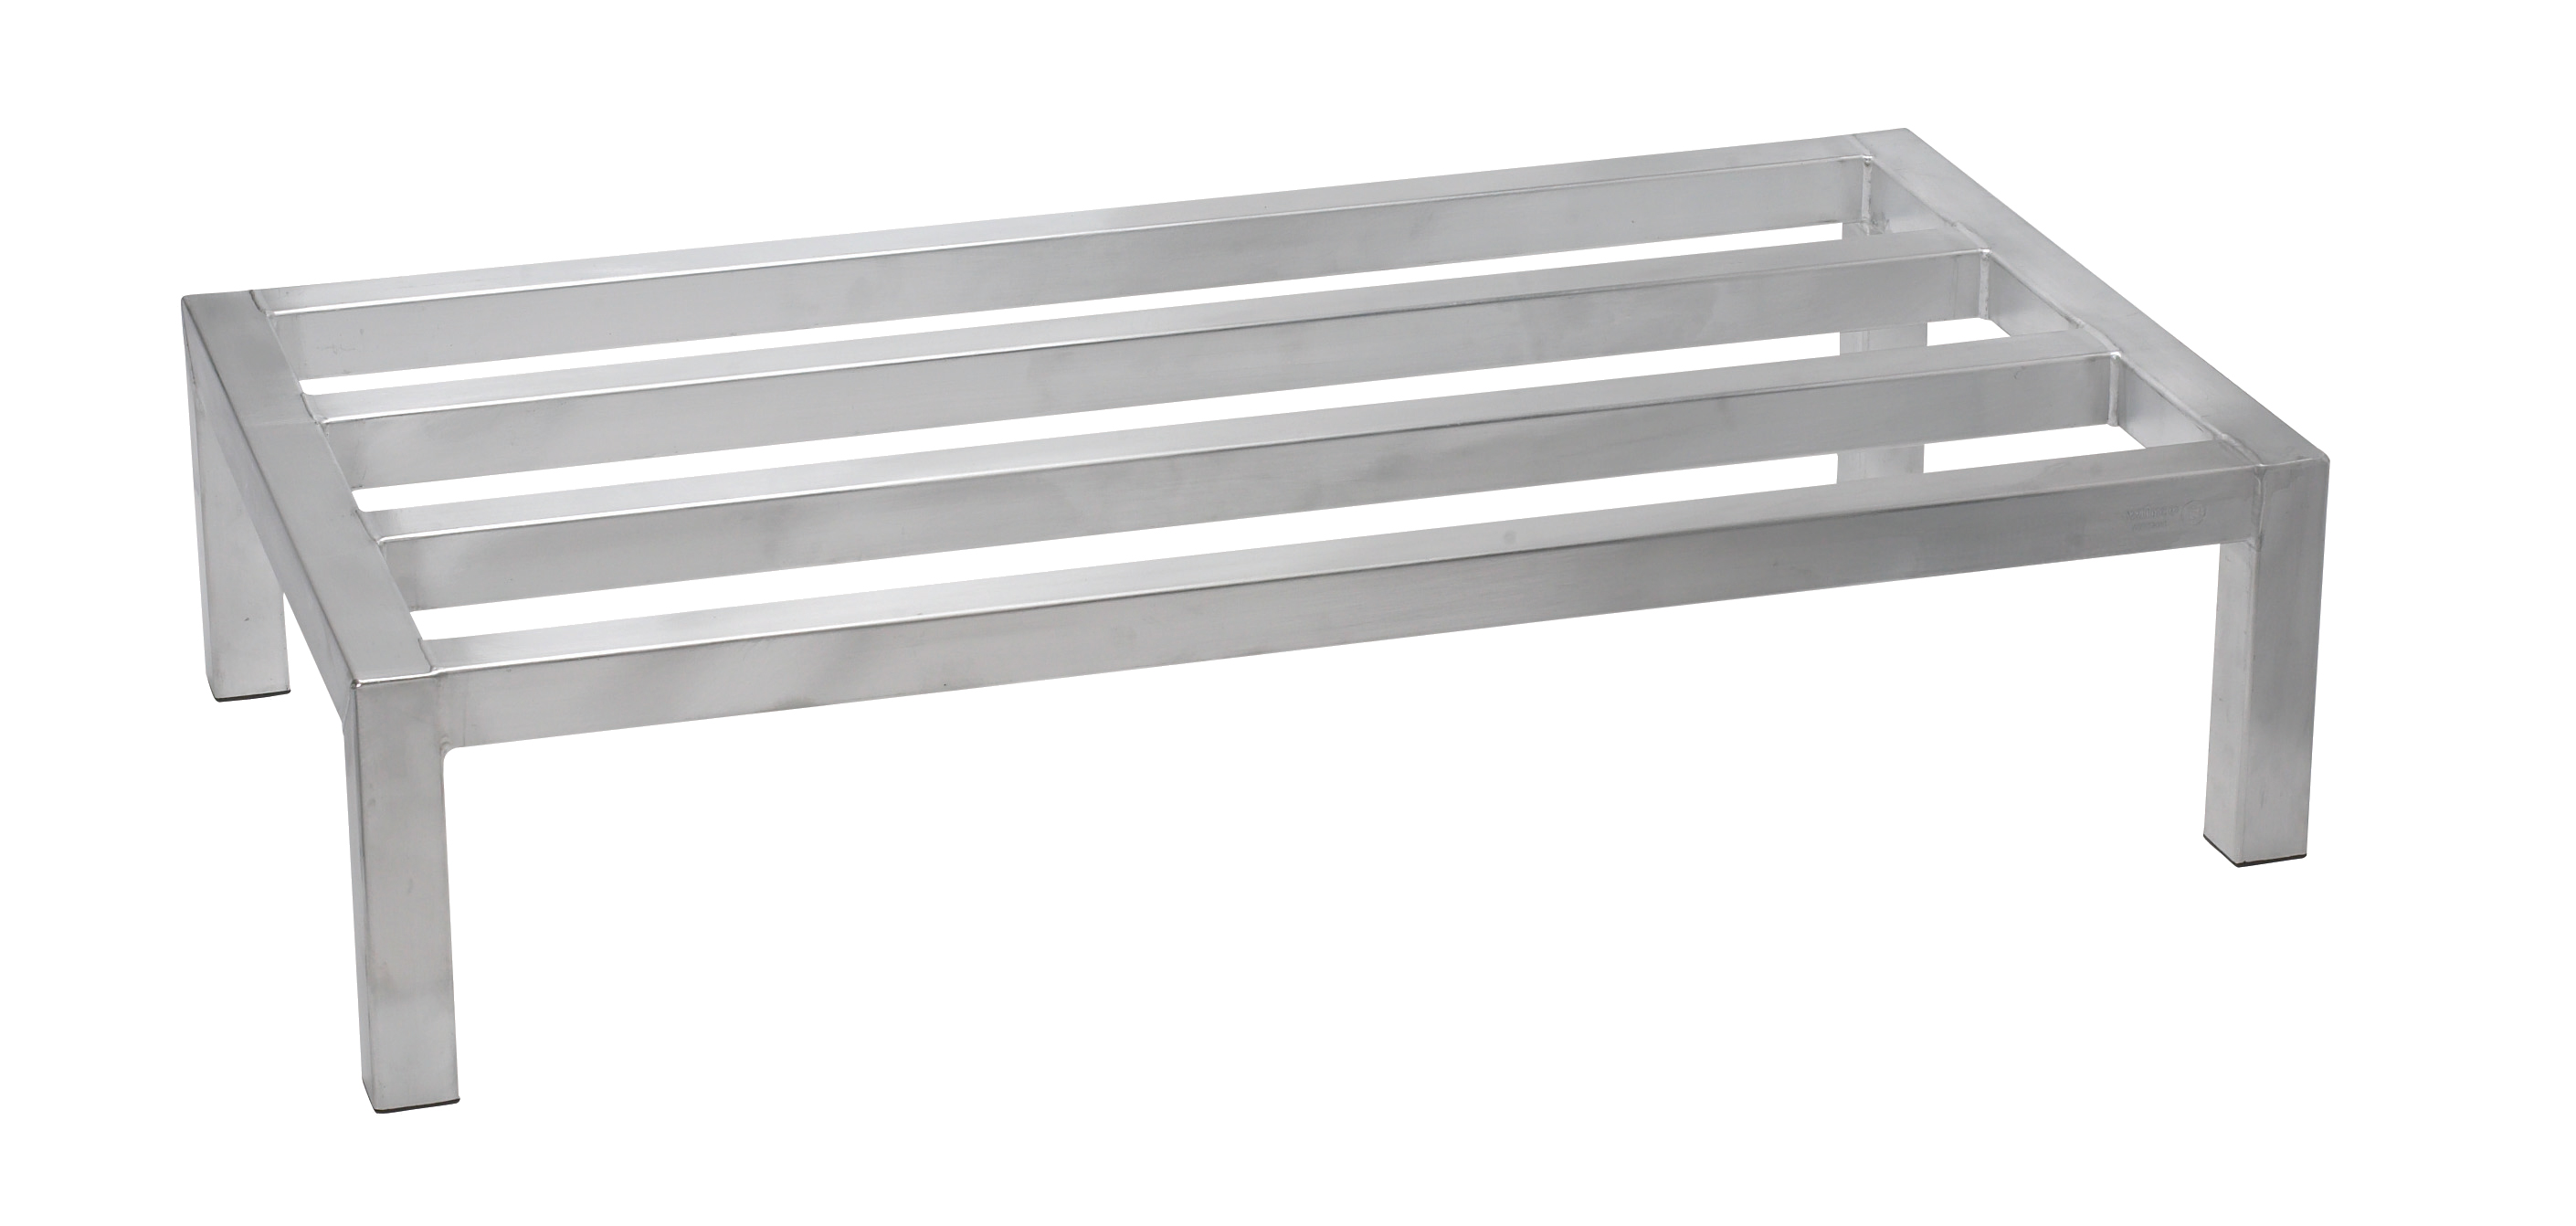 Winco ASDR-2036 dunnage rack, vented